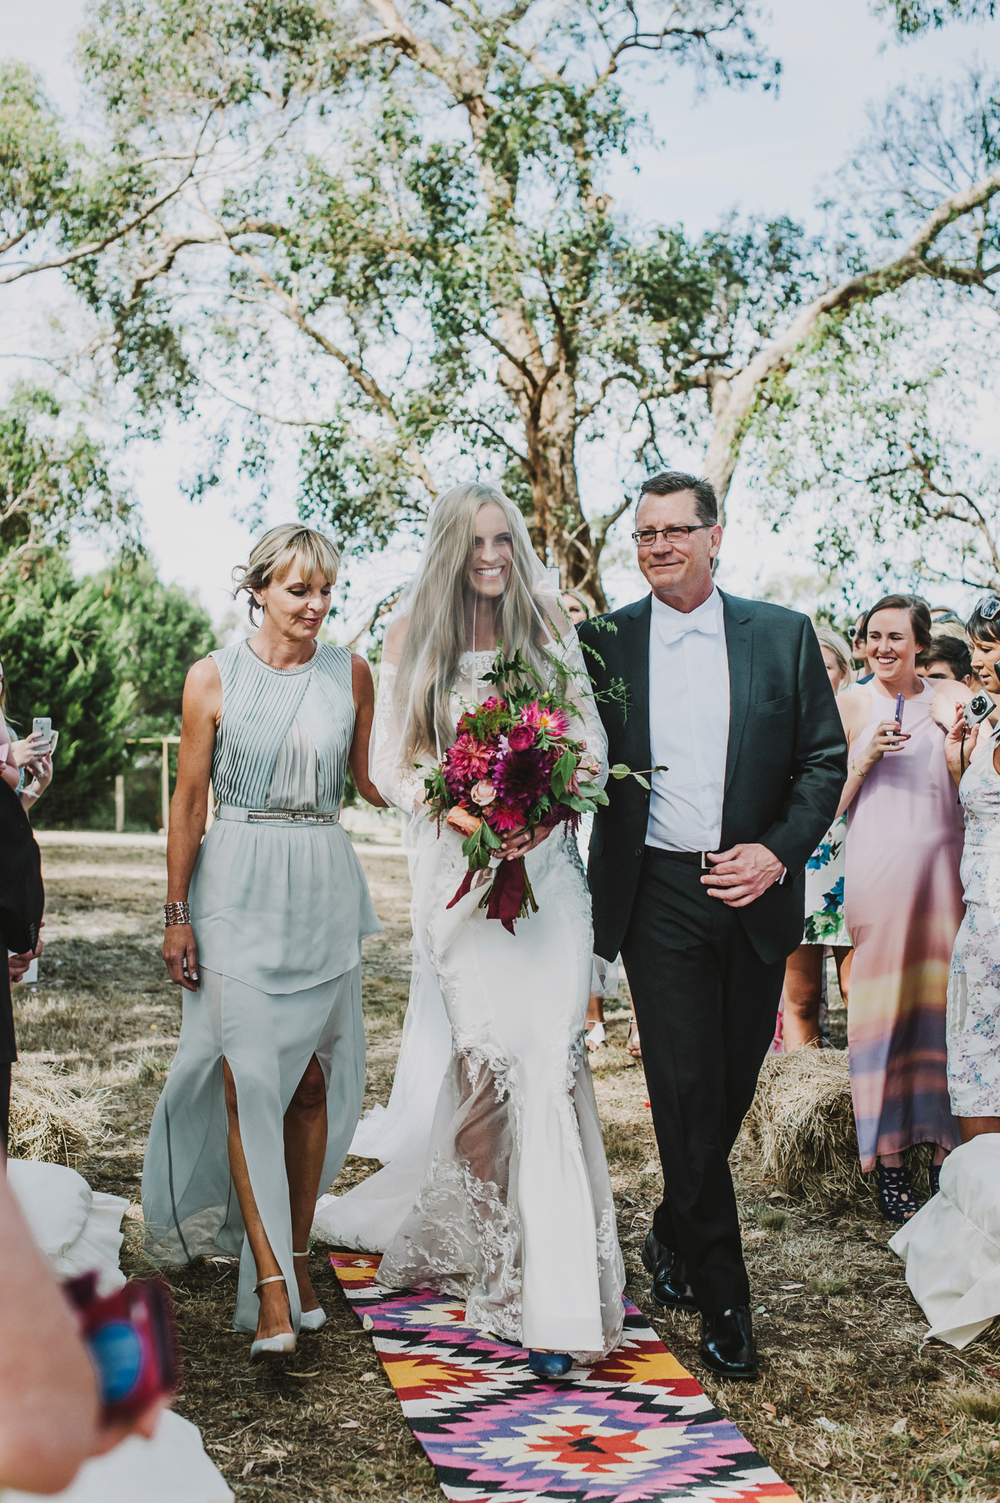 WEB Shae + Mitch Bush Festival Wedding She Takes Pictures He Makes Films Sooti Events and Styling-45.jpg